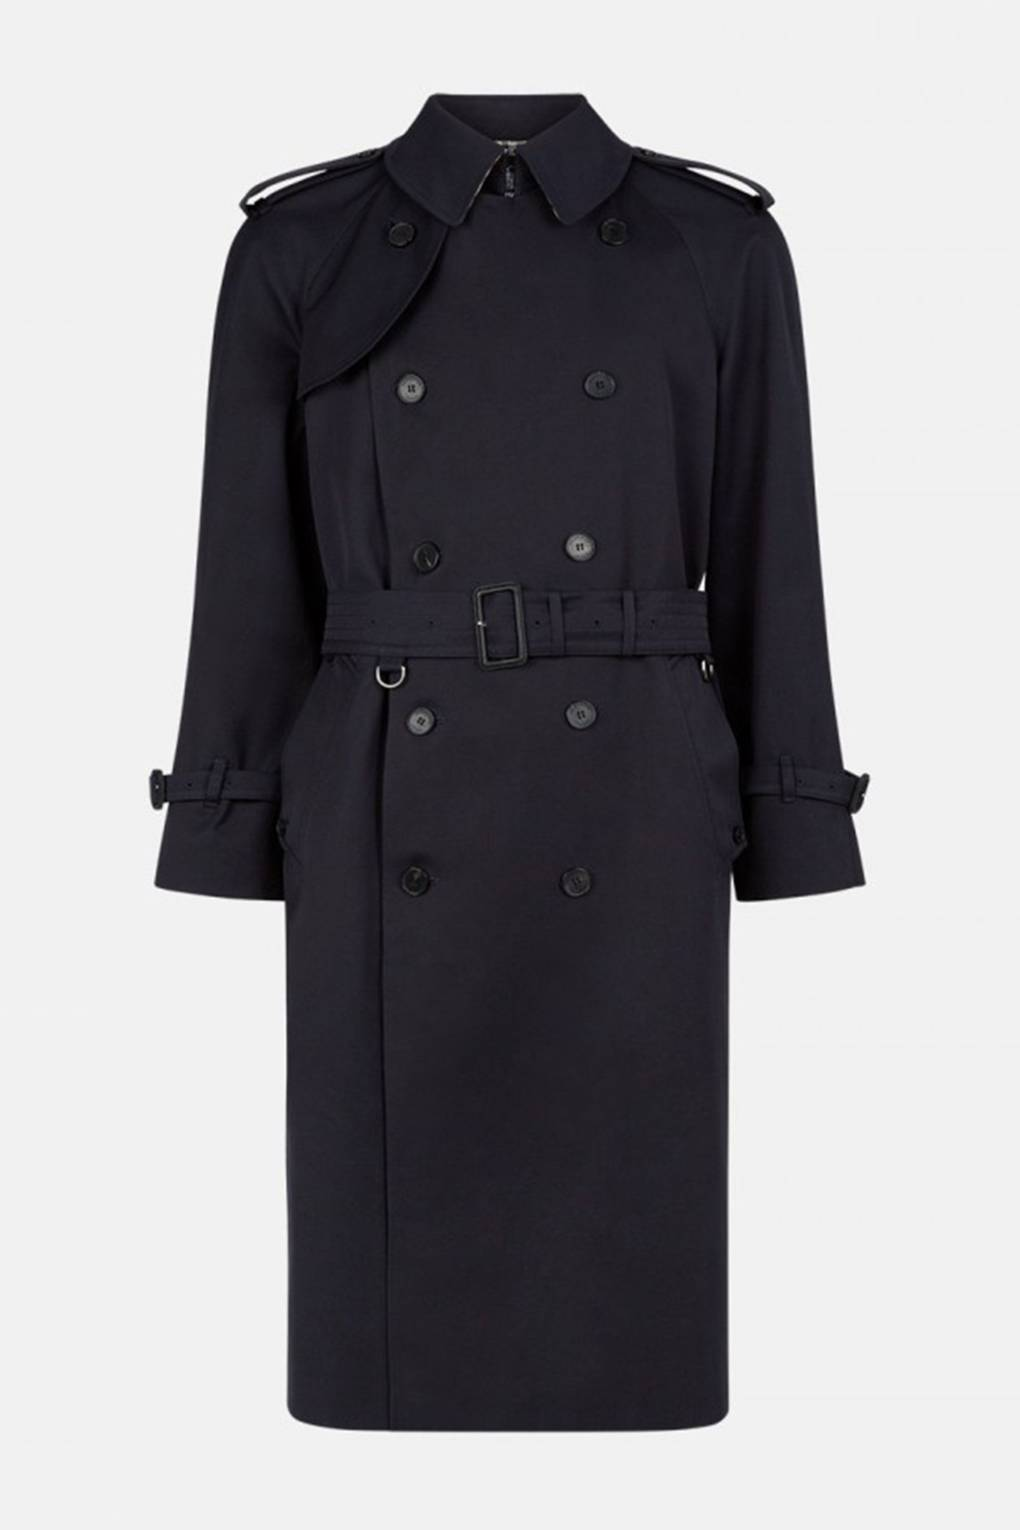 9ee2944ac6c Best trench coats for men | British GQ